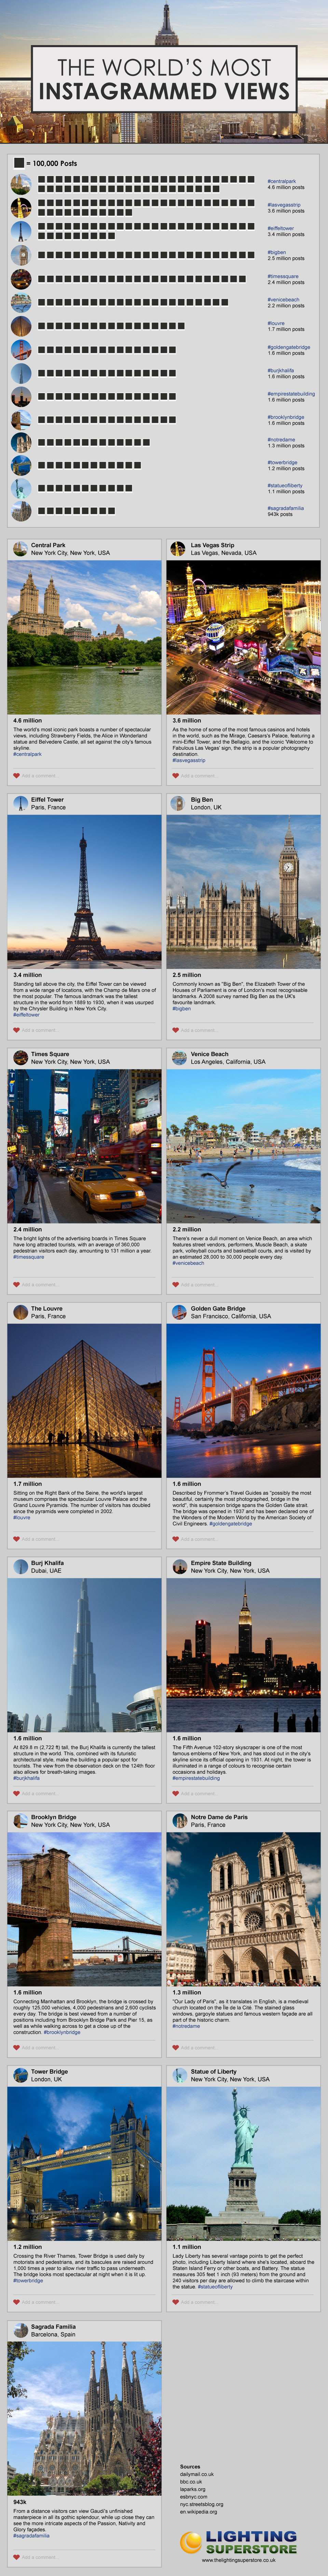 The World's Most Instagrammed Views